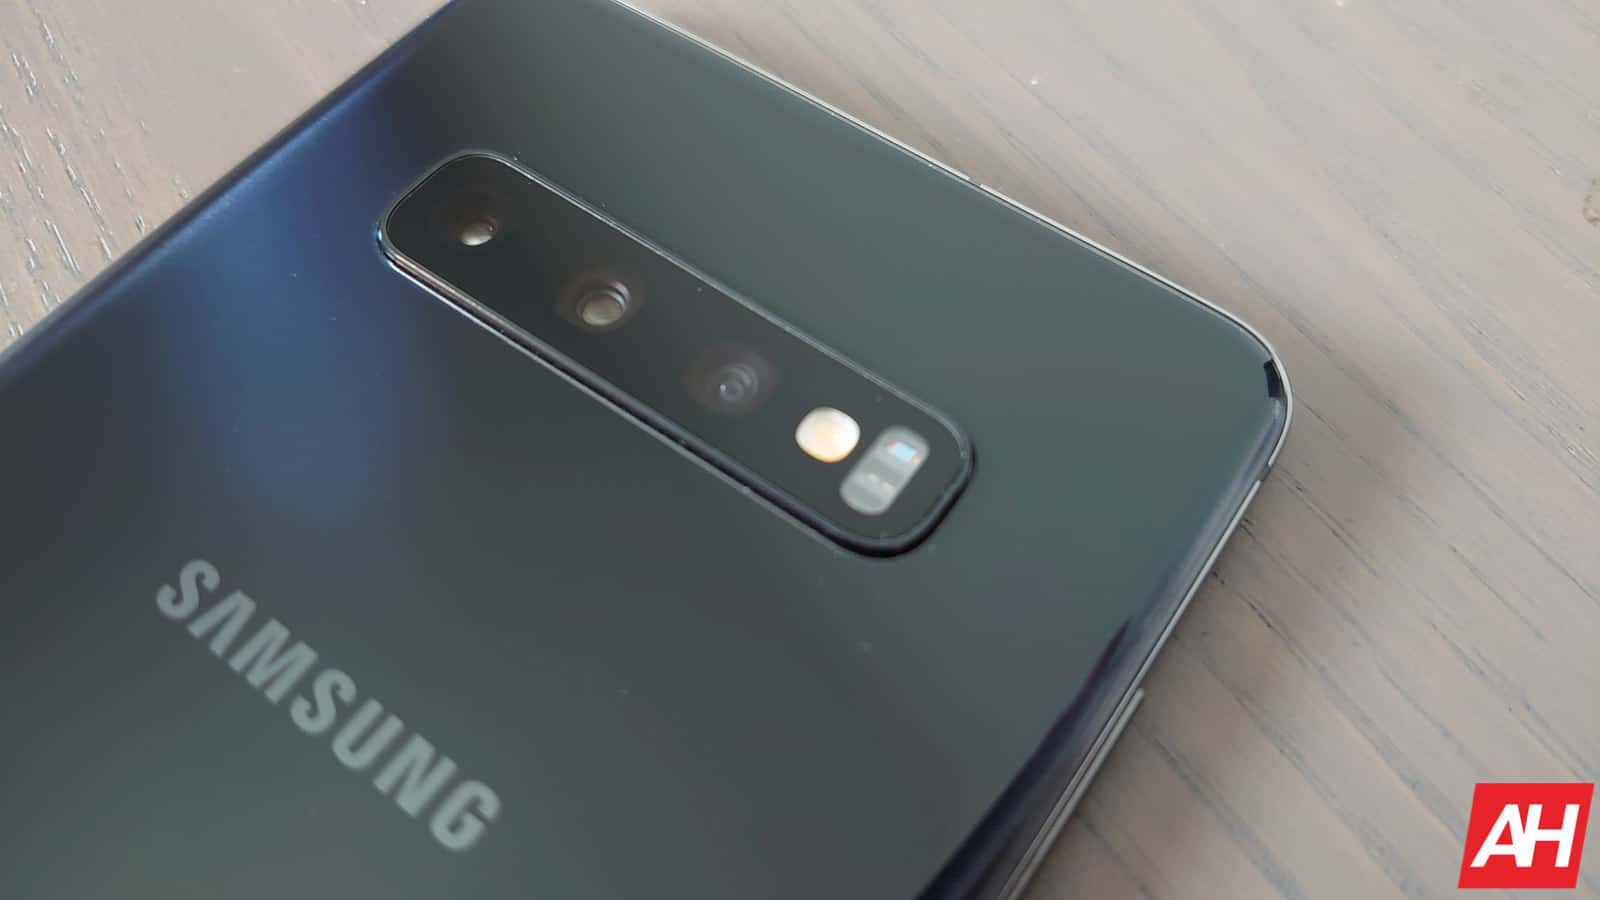 T Mobile Releases May 2020 Security Update For The Galaxy S10 Series